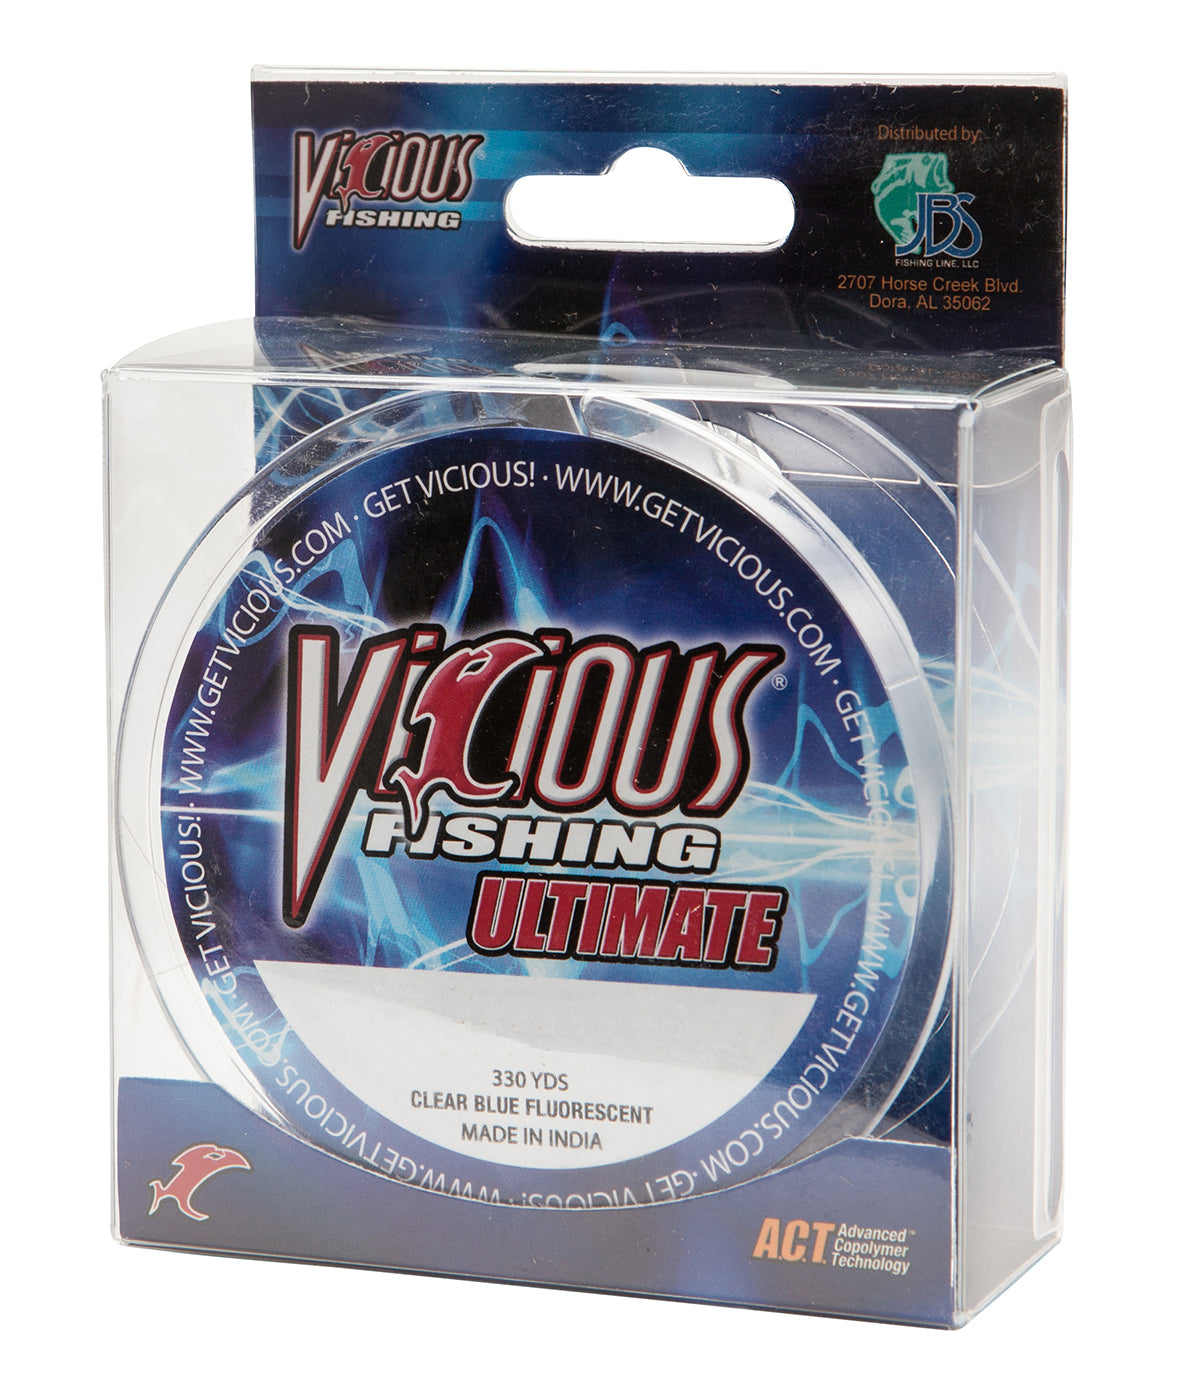 20lb Vicious Clear Blue Ultimate - 330 Yards